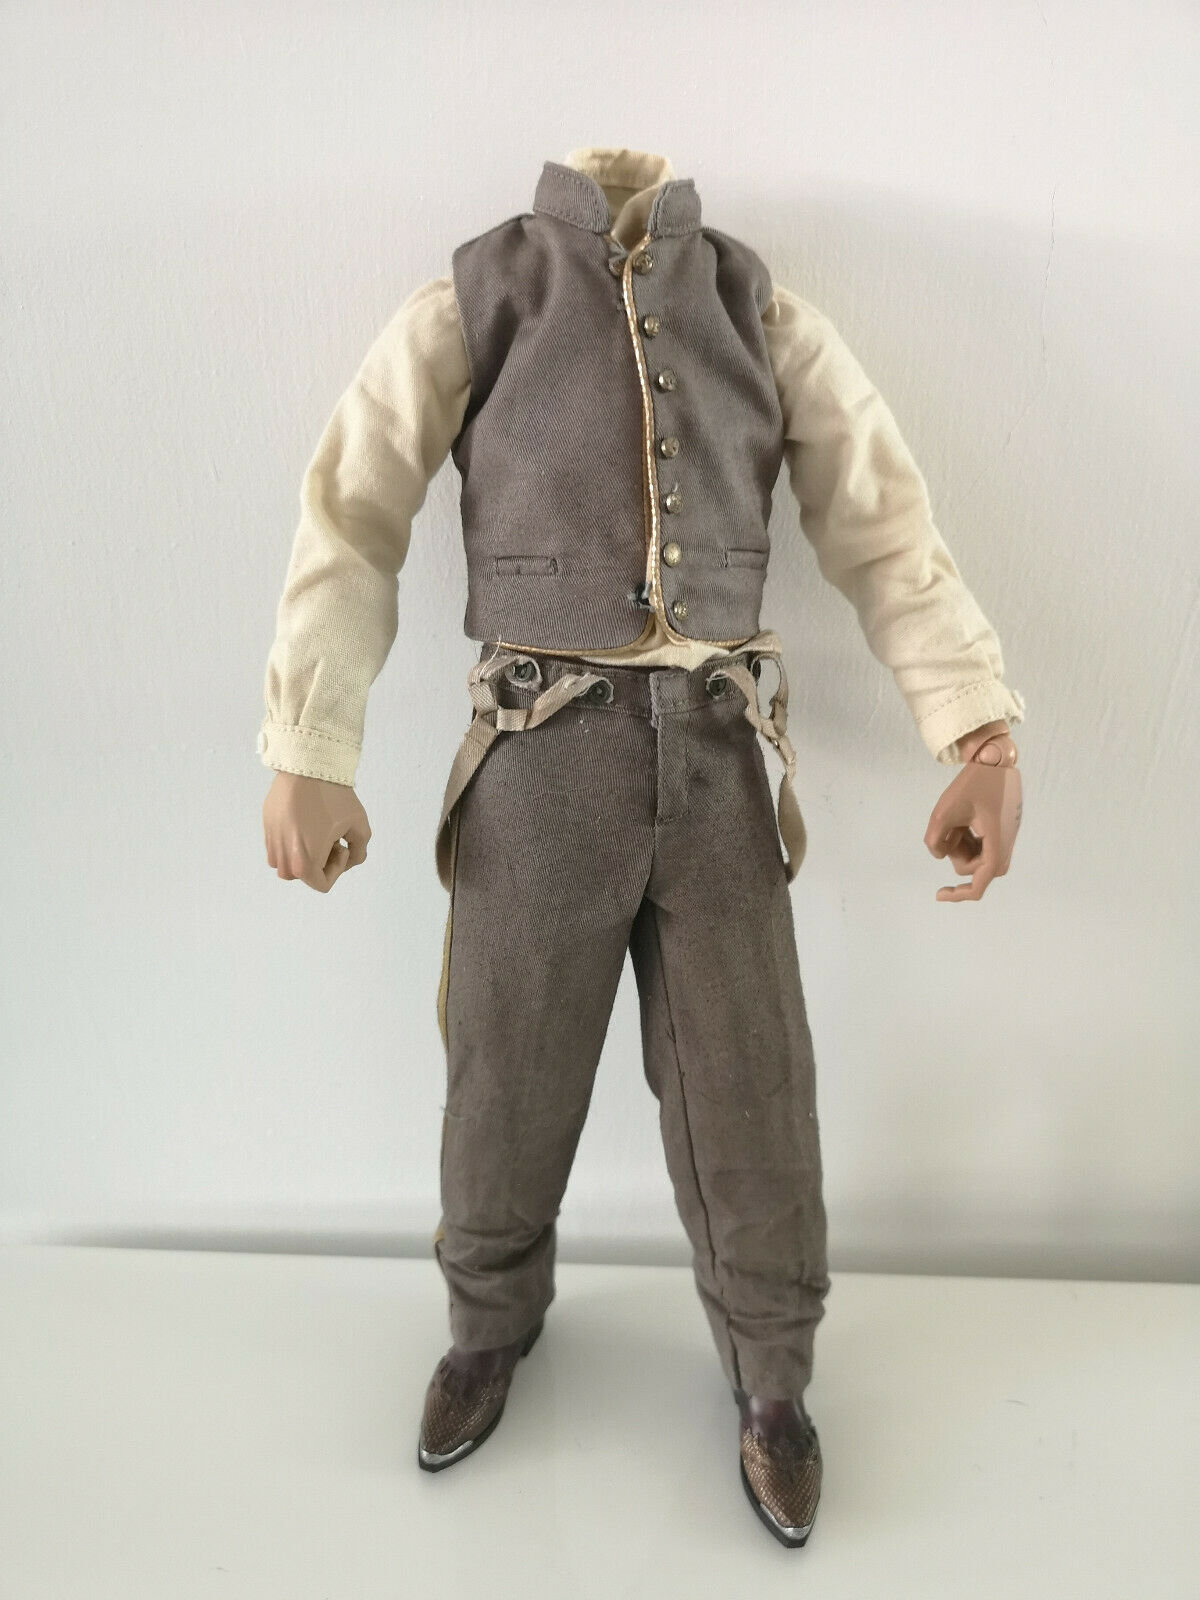 1 6 SCALE JONAH HEX OUTFIT COWBOY